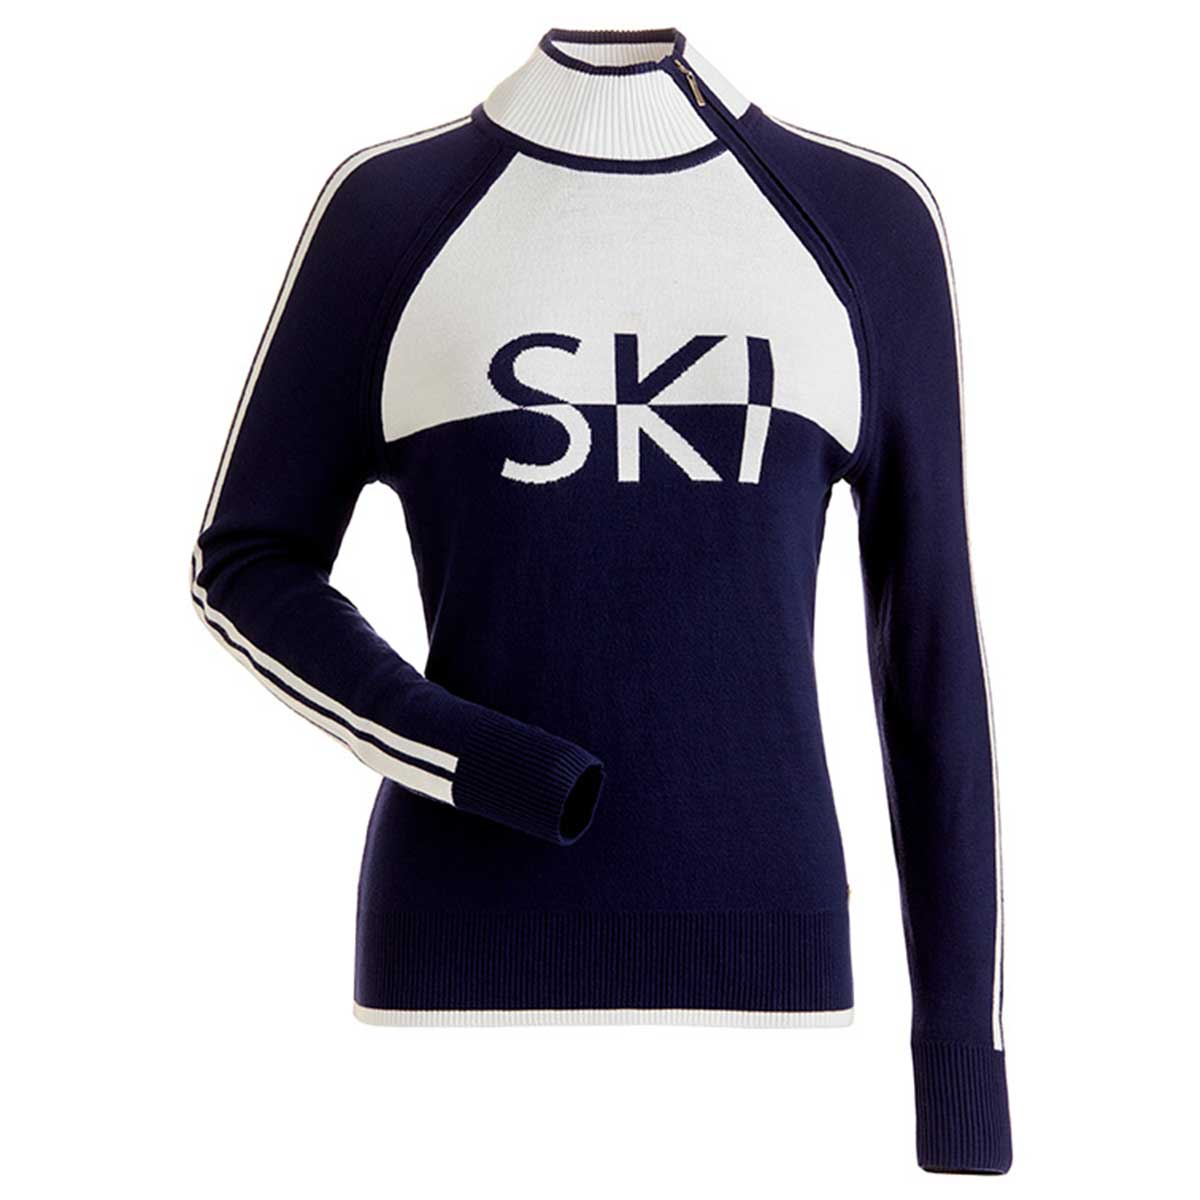 NILS Ski sweater in Navy and White